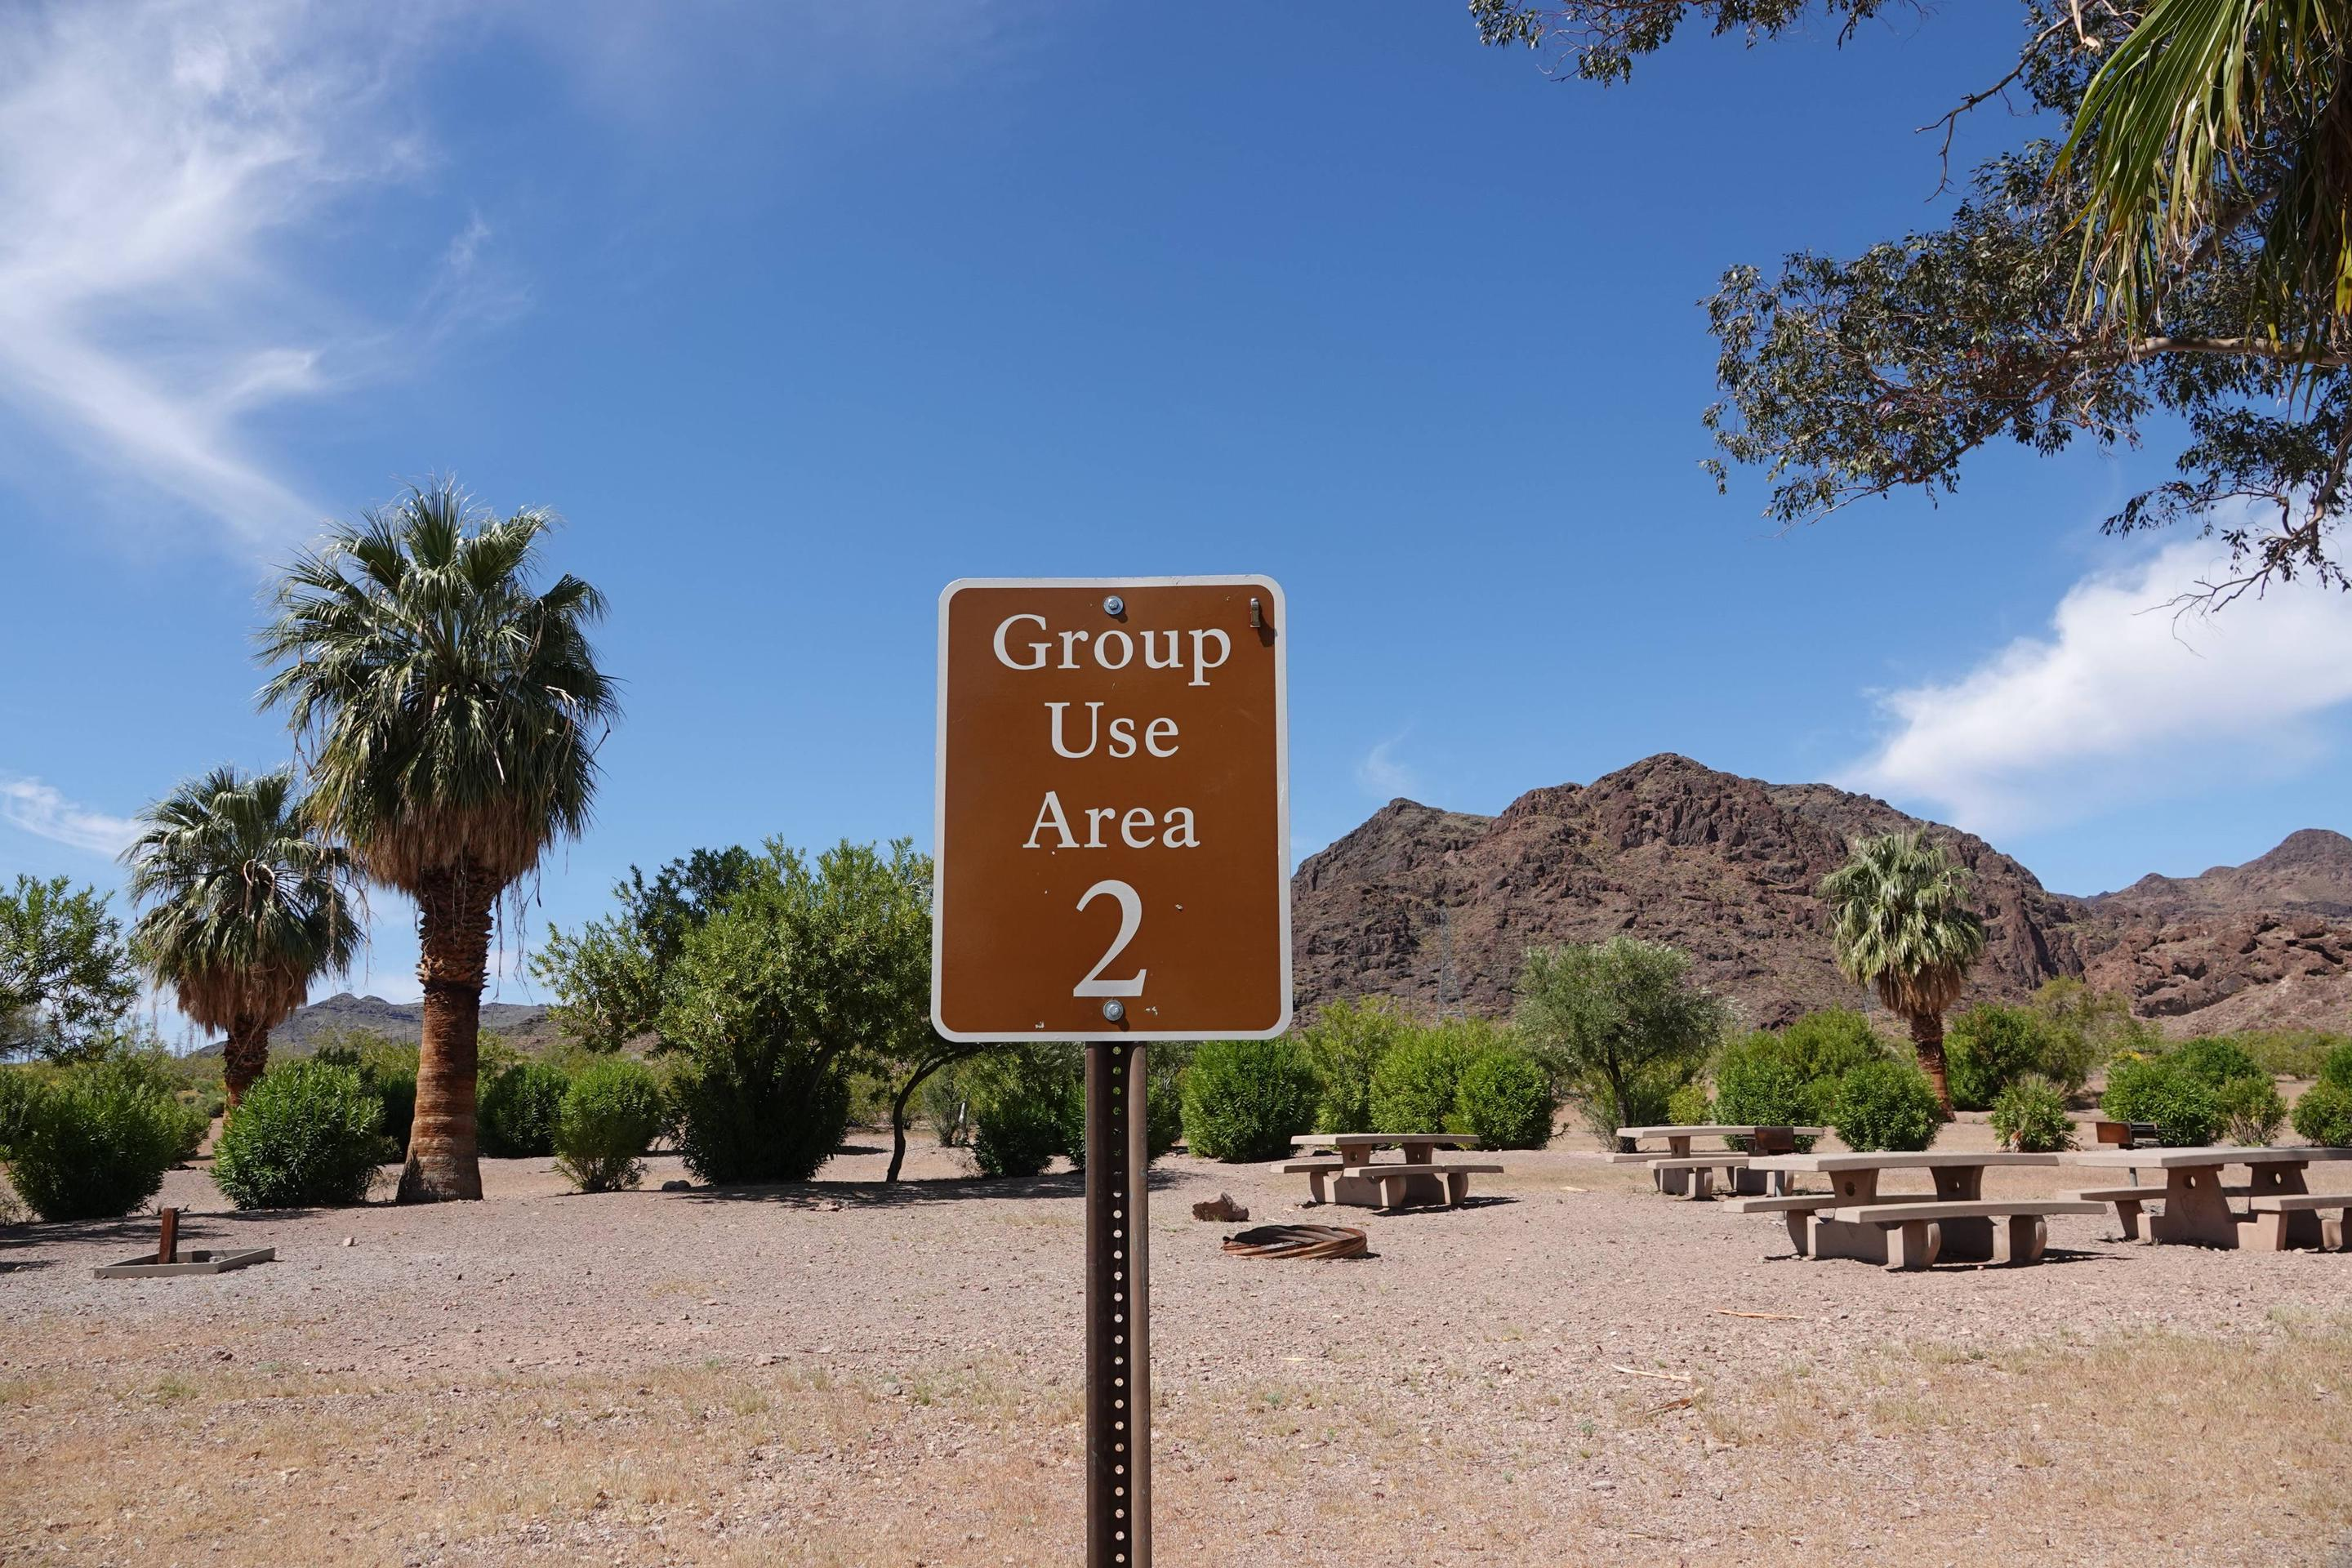 Campsite 2 sign located in an open desert settingBoulder Beach Group Site 2